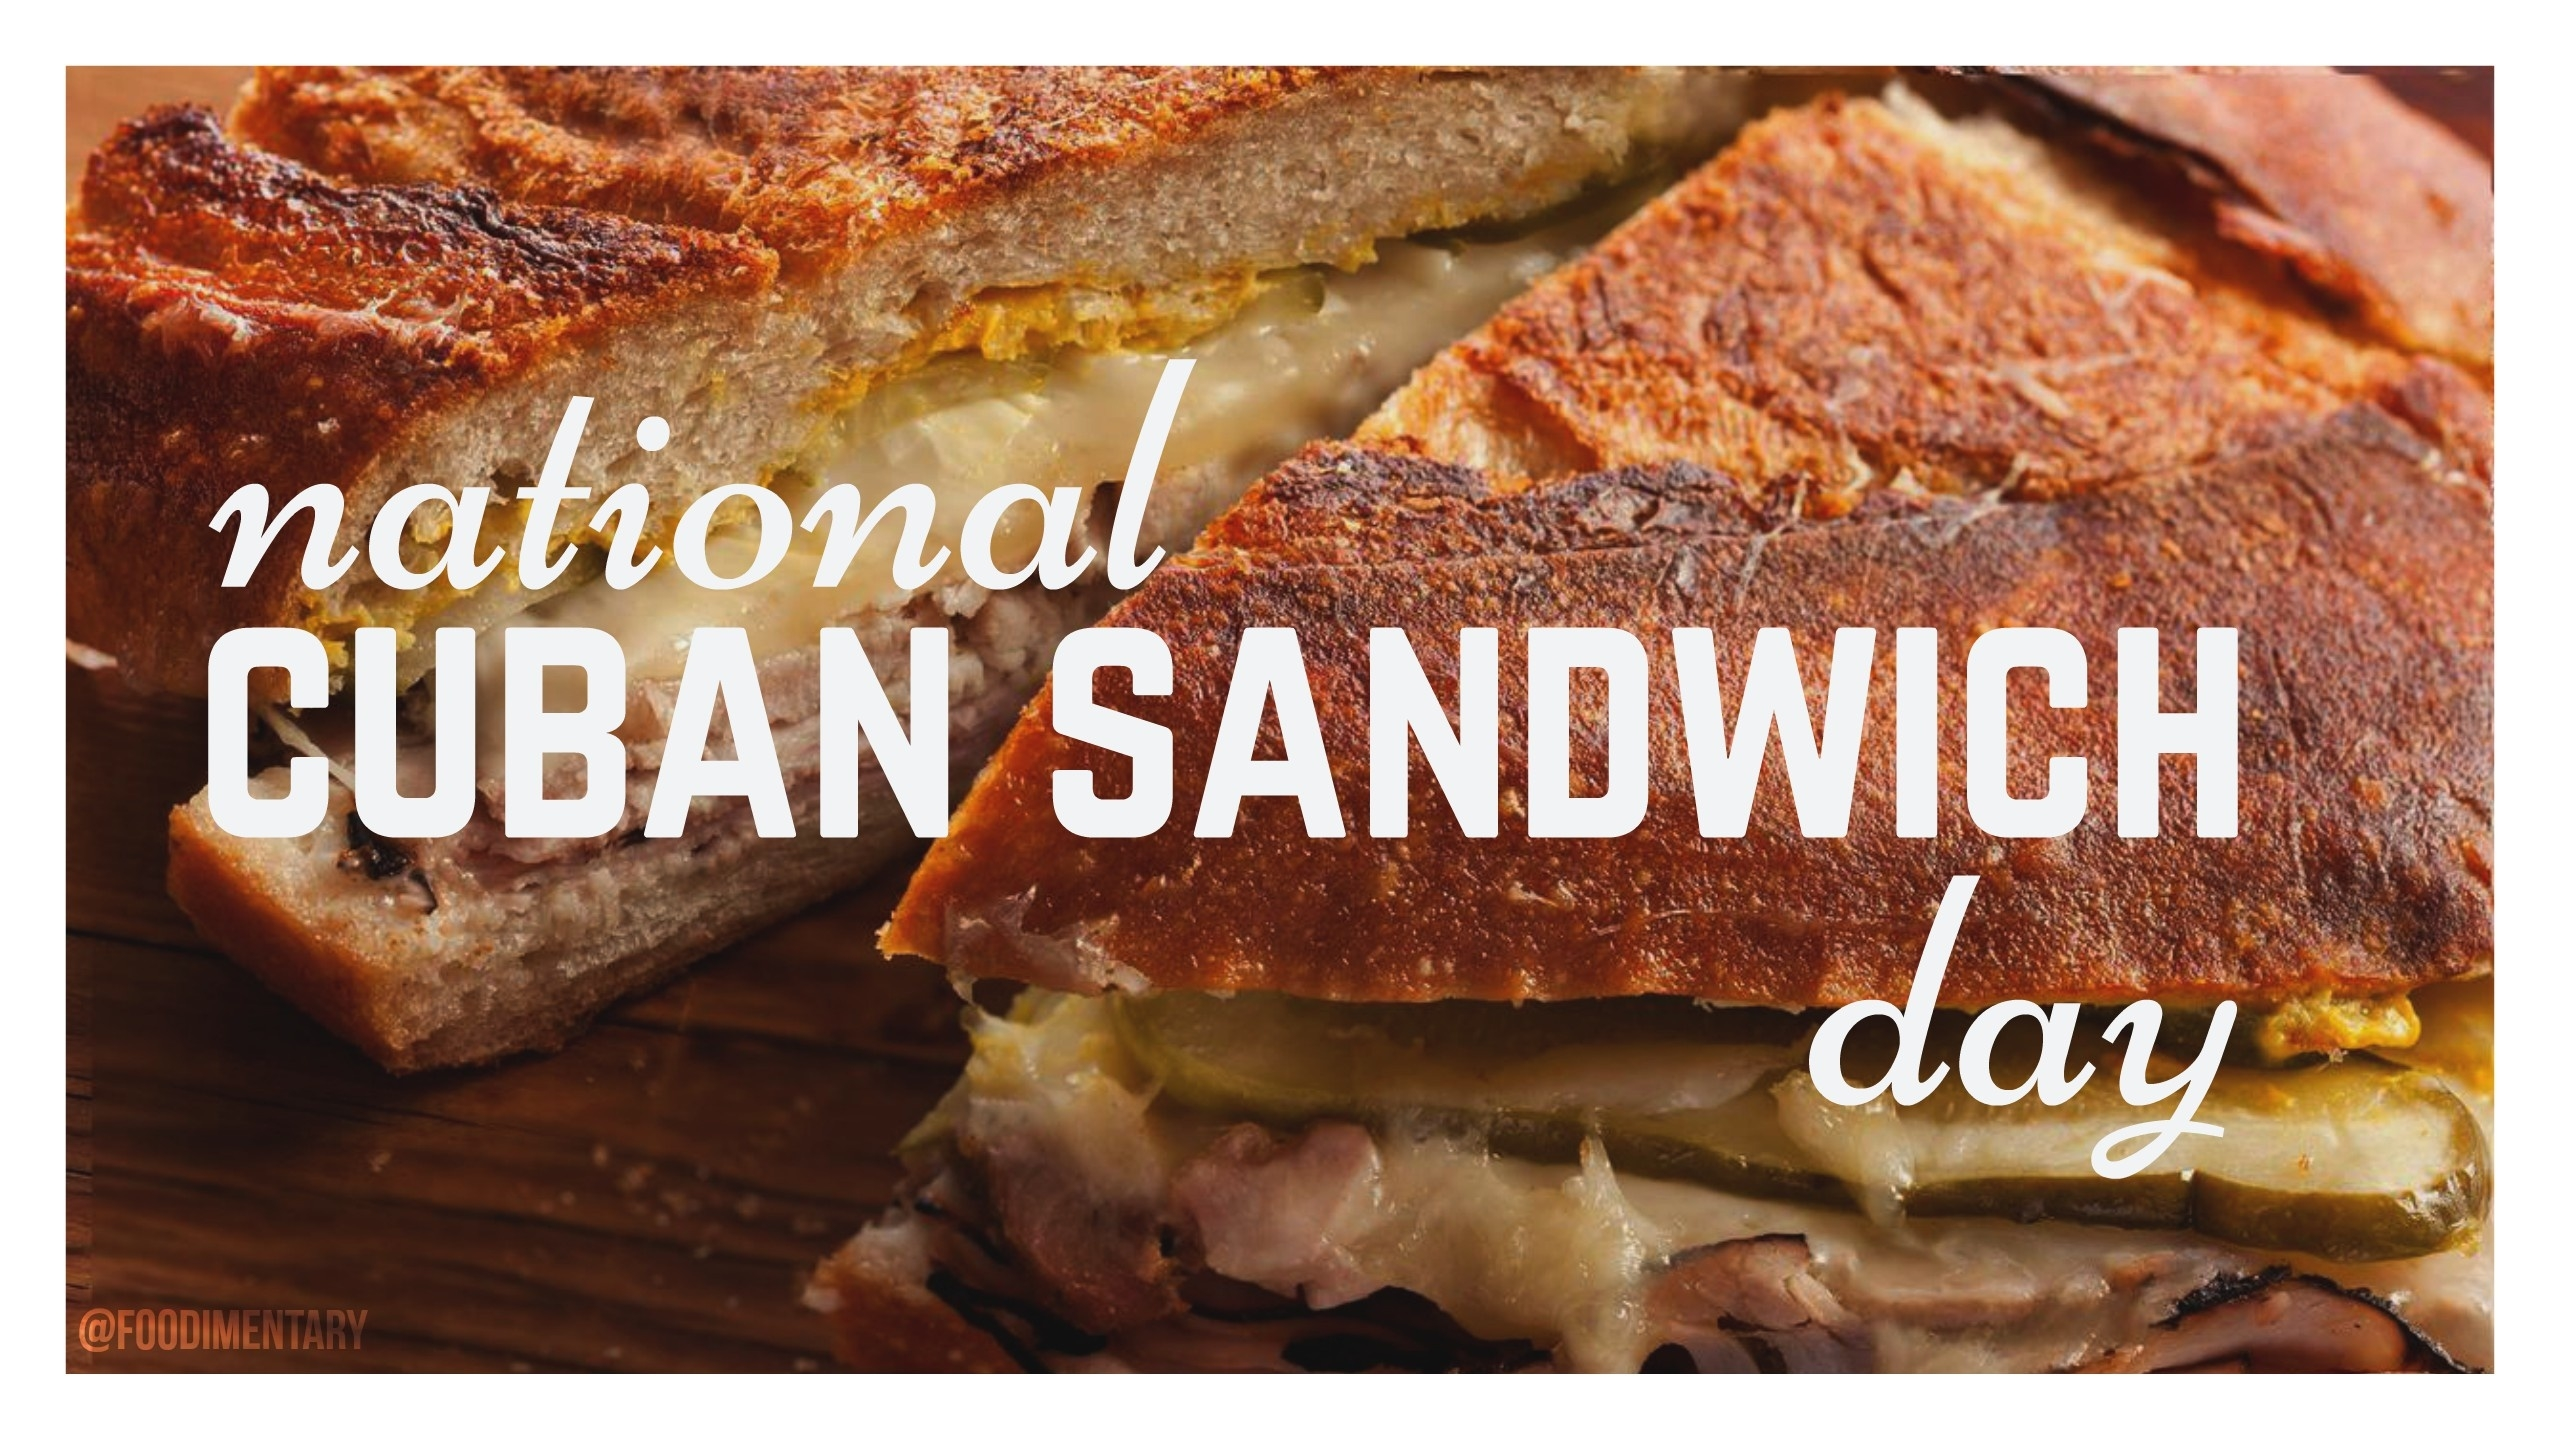 August 23Rd Is National Cuban Sandwich Day! | Foodimentary  Images National Day August 23